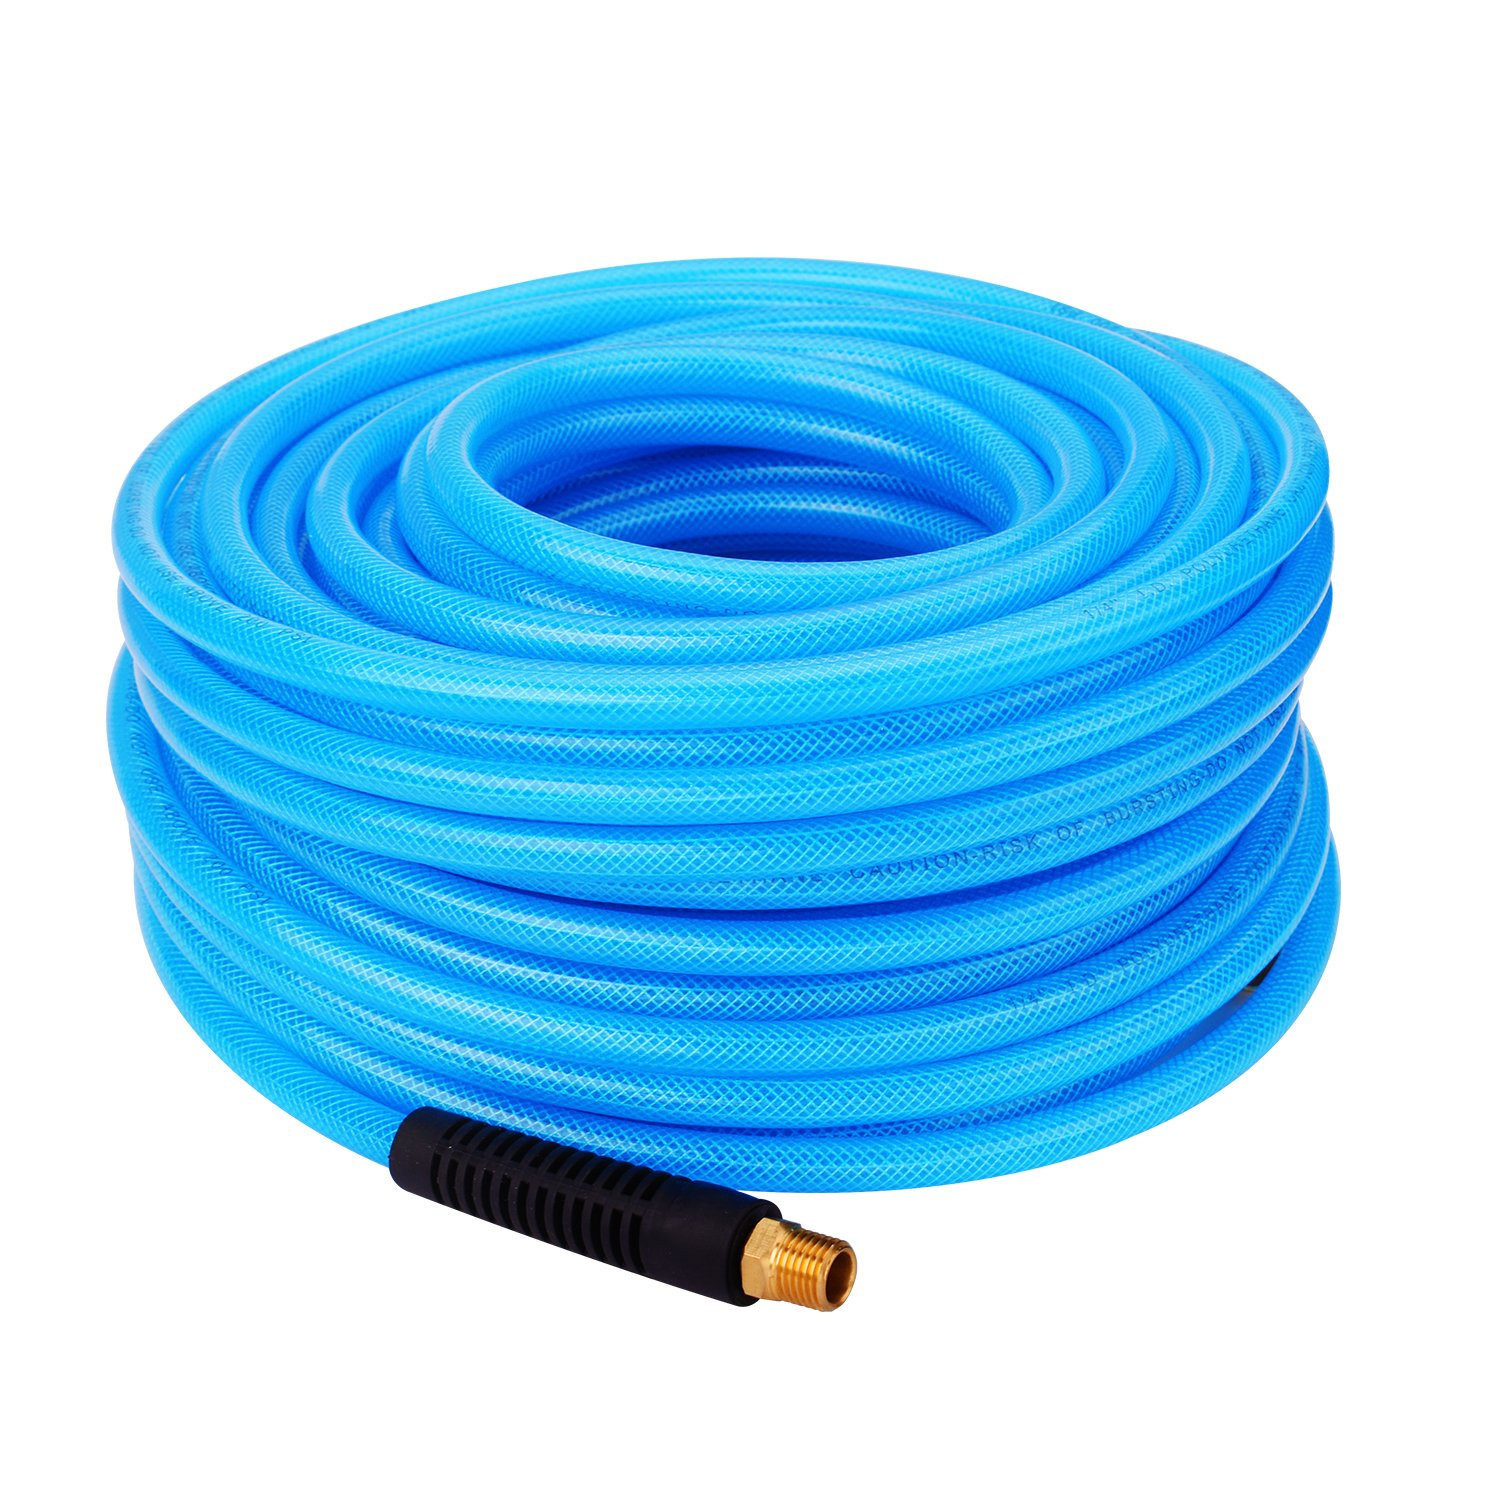 WYNNsky Reinforced Polyurethane (PU) Air Hose, 1/4''x100ft, 300 PSI, Air Compressor Hose With 1/4'' MNPT Brass Endings